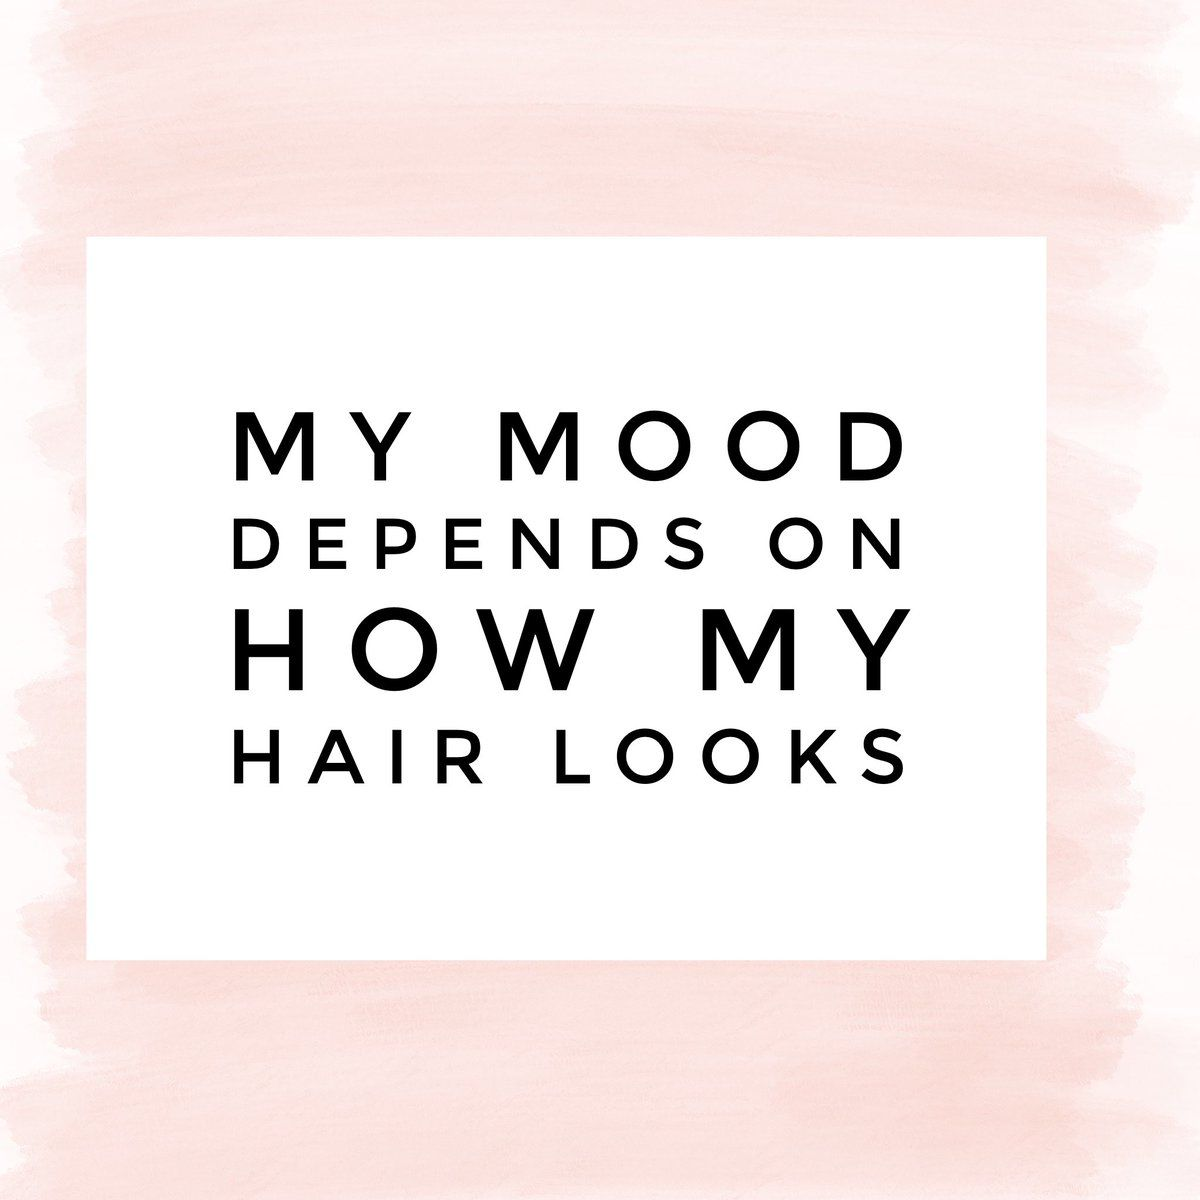 Reflexion Hair Reflexionhair Hairdresser Quotes Hair Quotes Quote Aesthetic